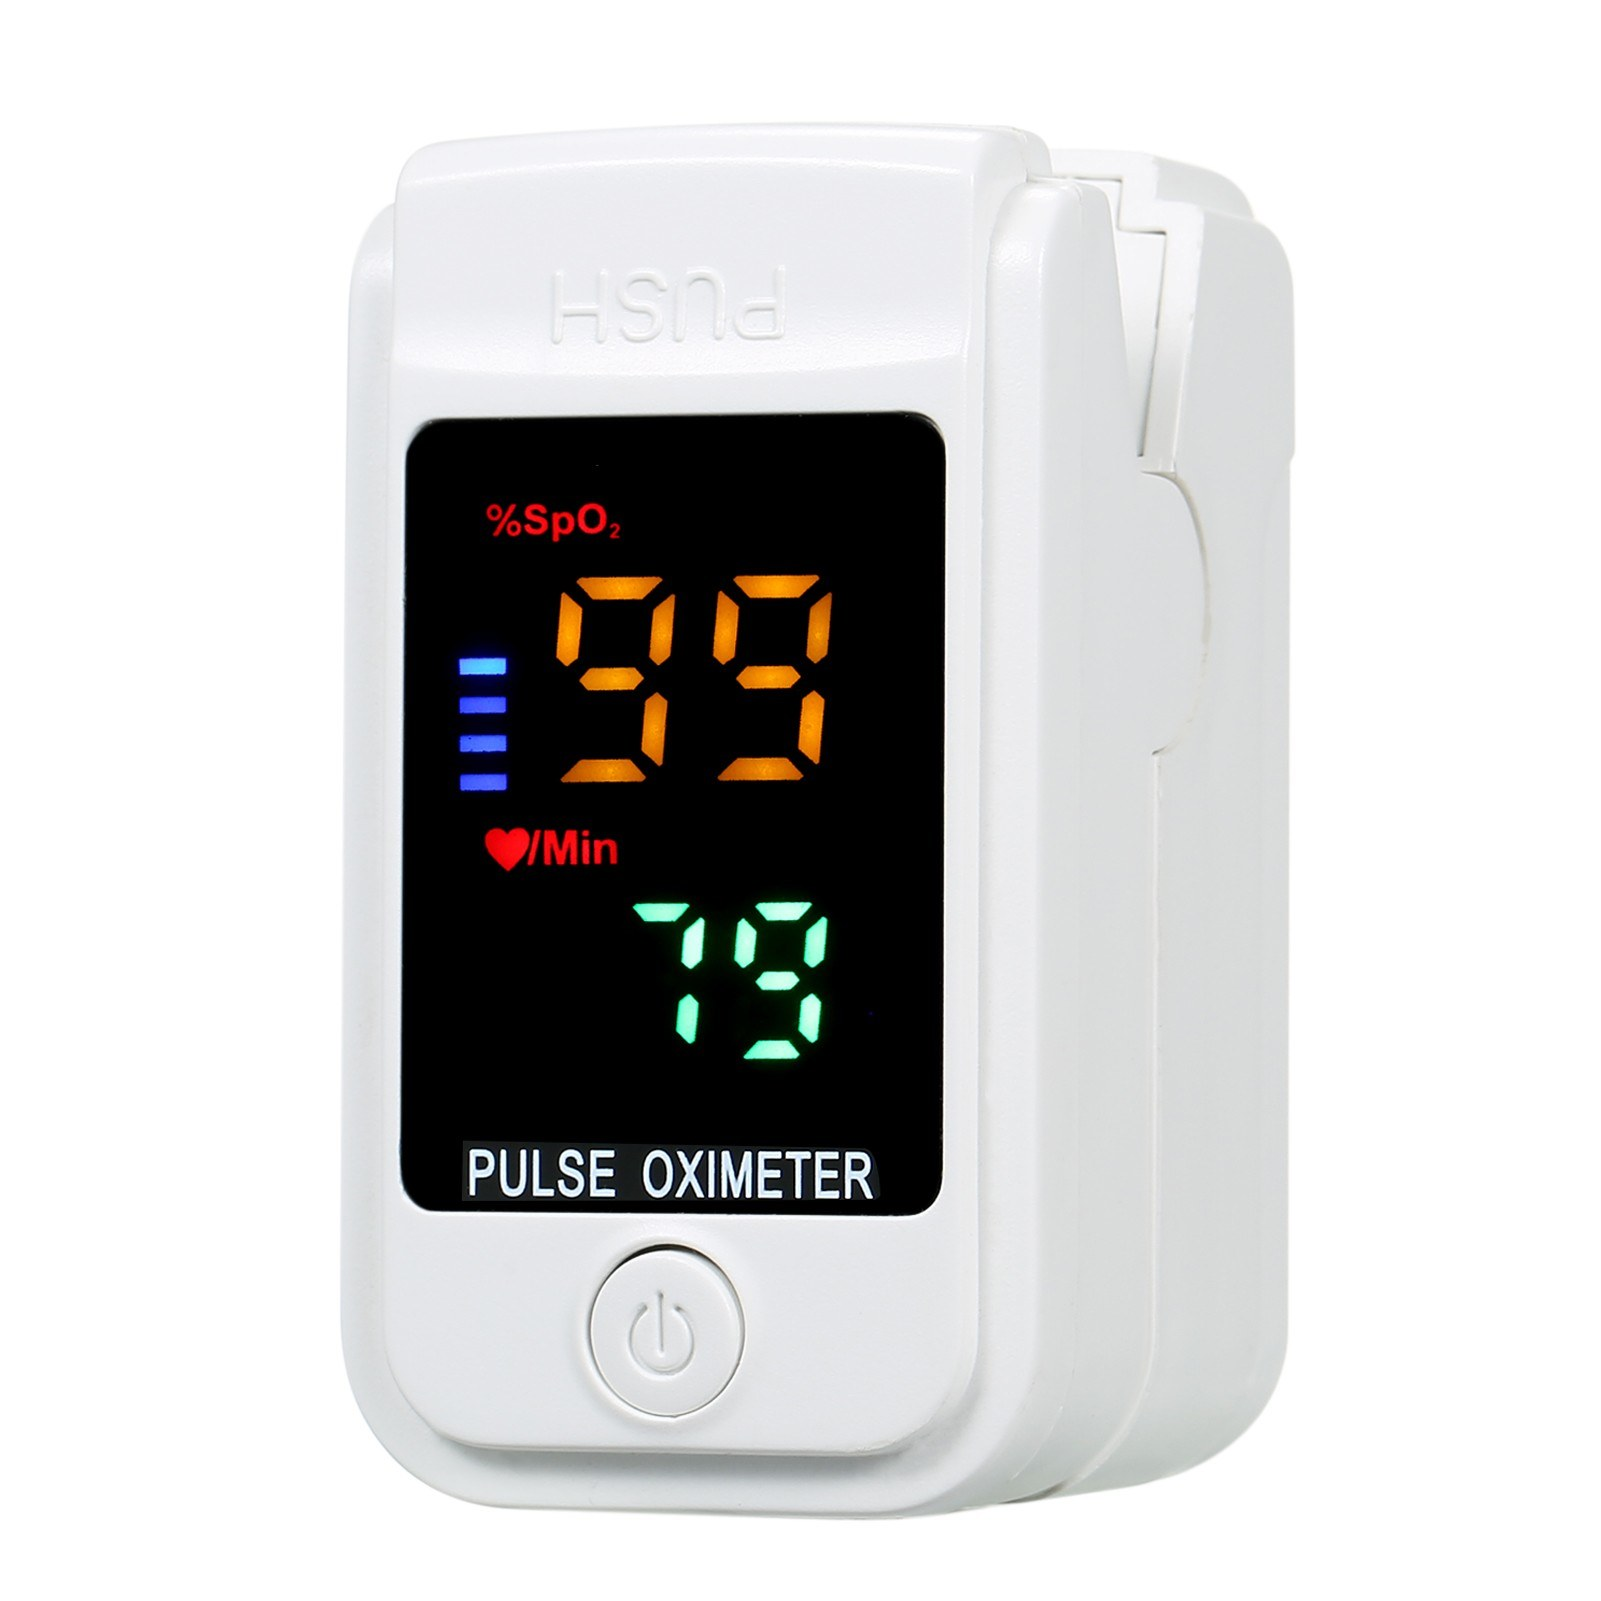 - 44% OFF Fingertip Clip Pulse Oximeter L-ED Colorful Screen Display, Free Shipping $7.69